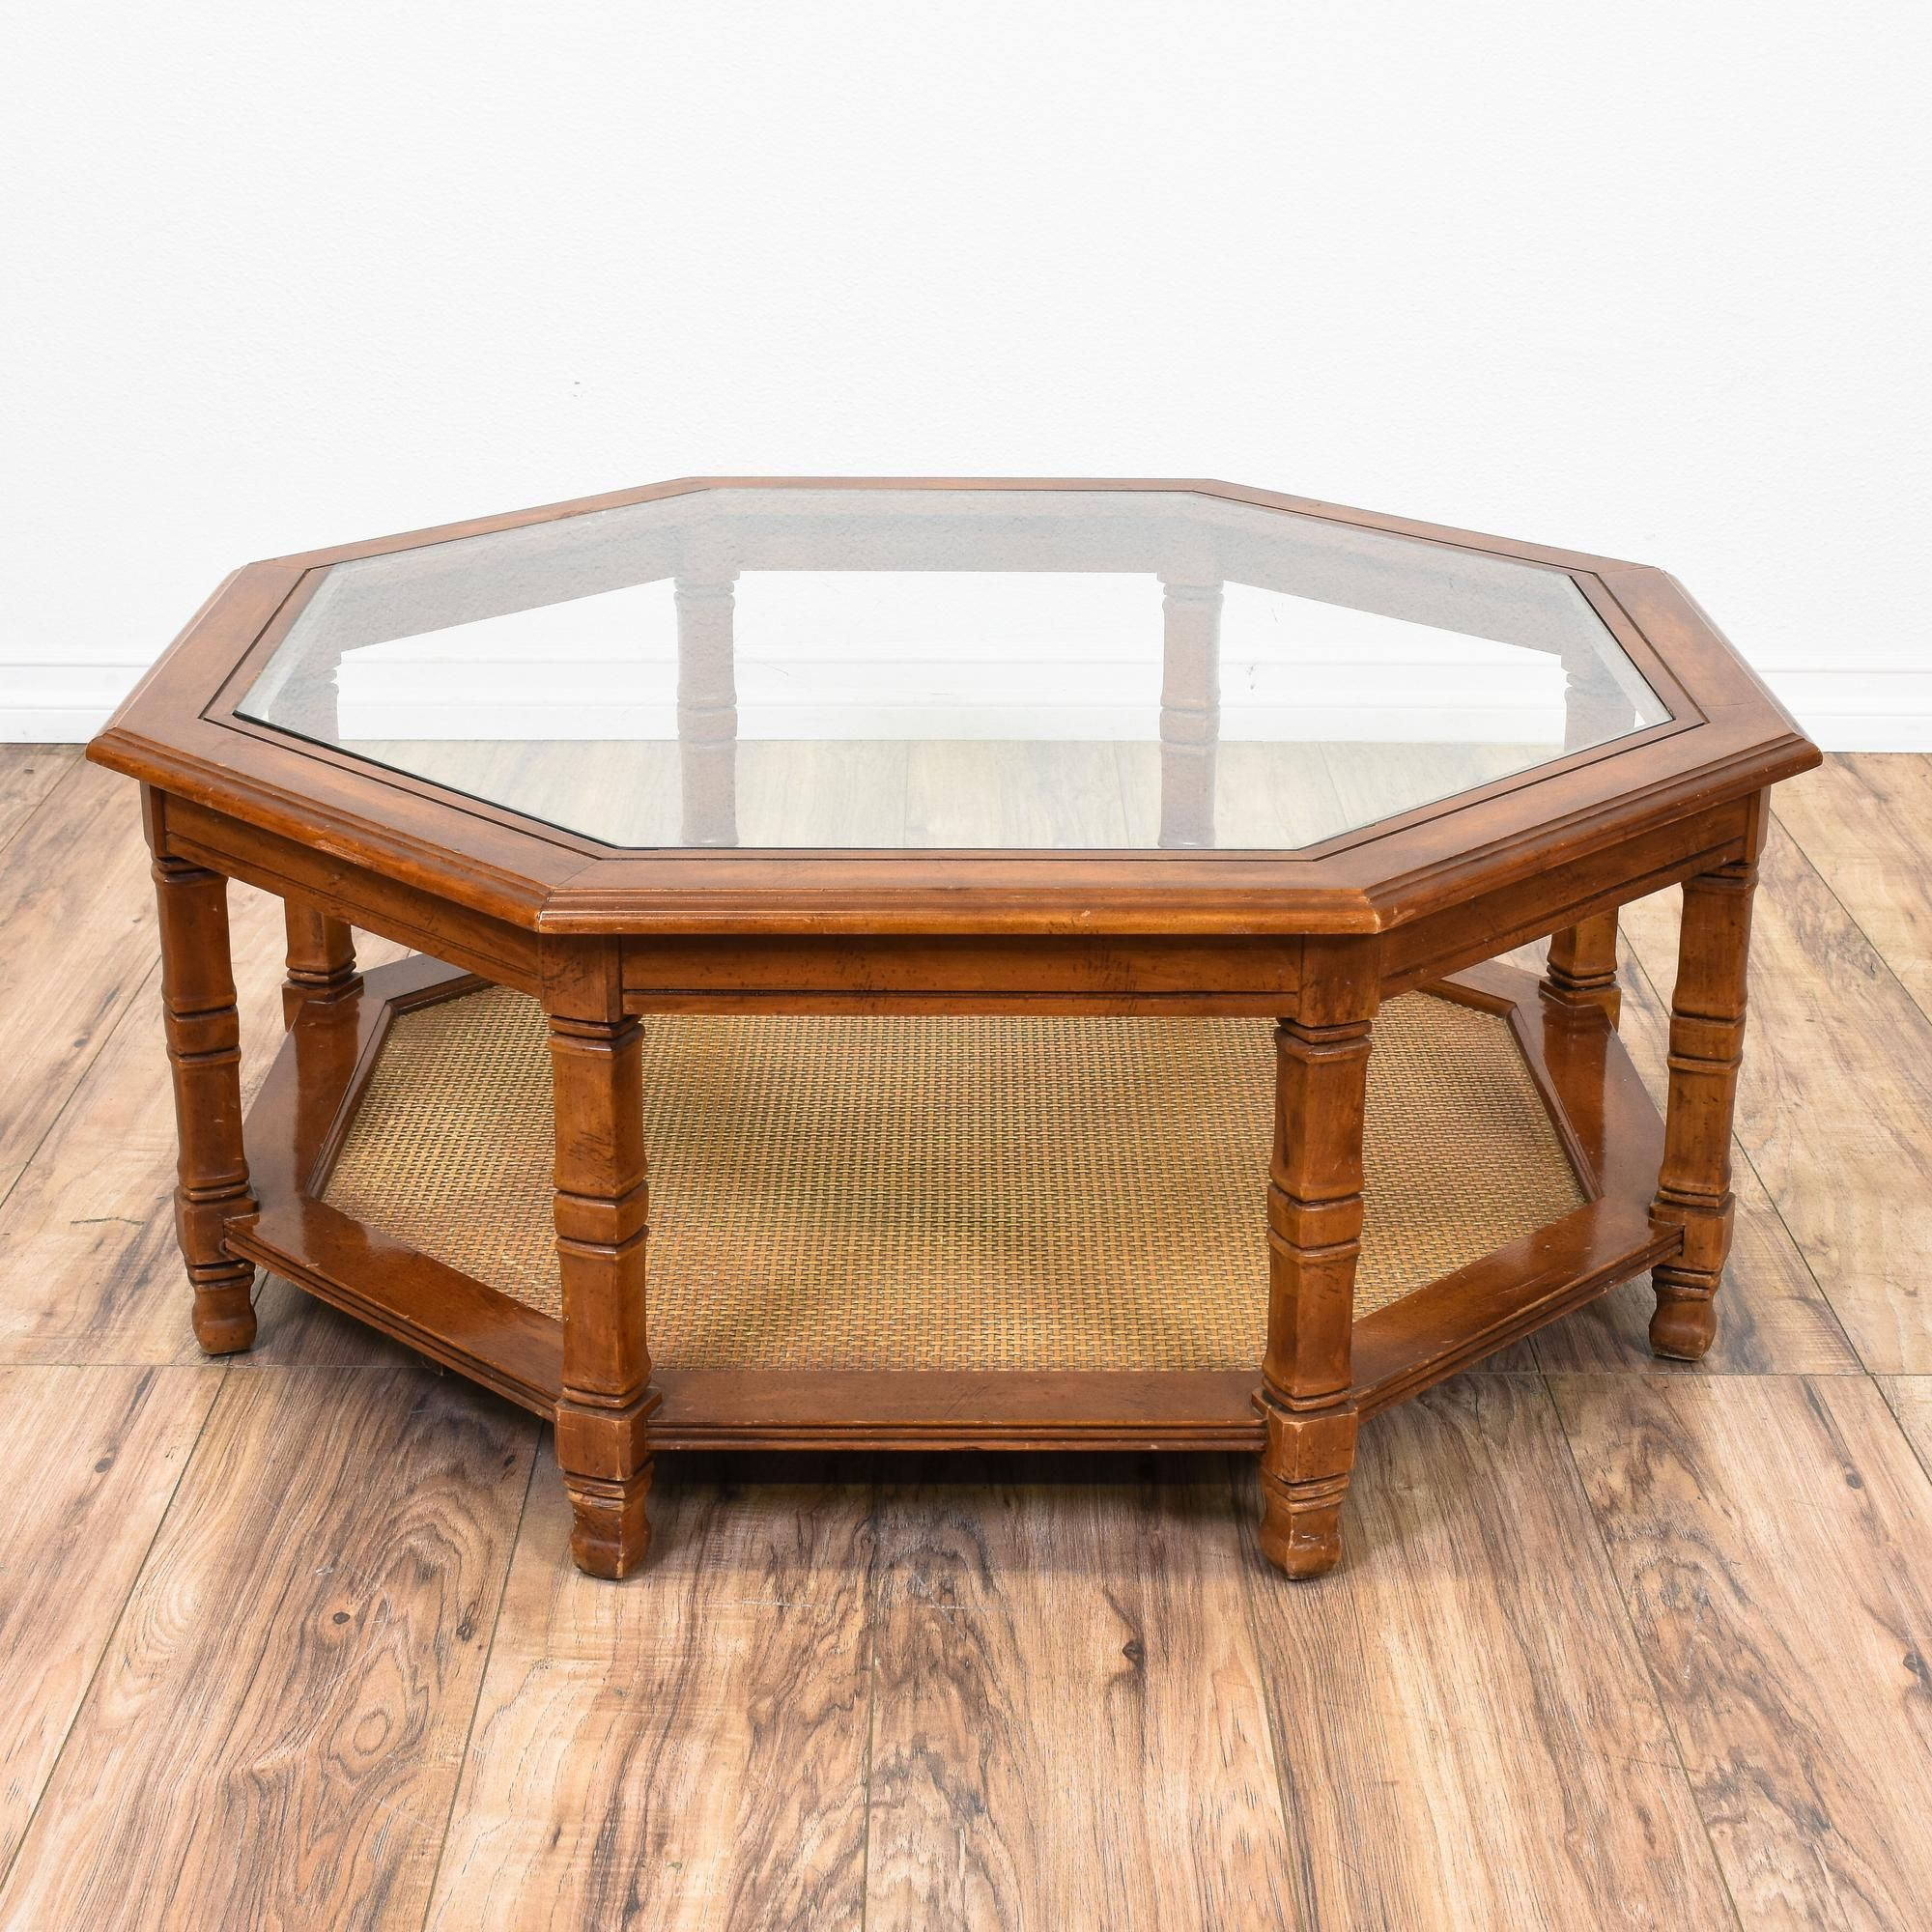 This octagon coffee table is featured in a solid wood with a